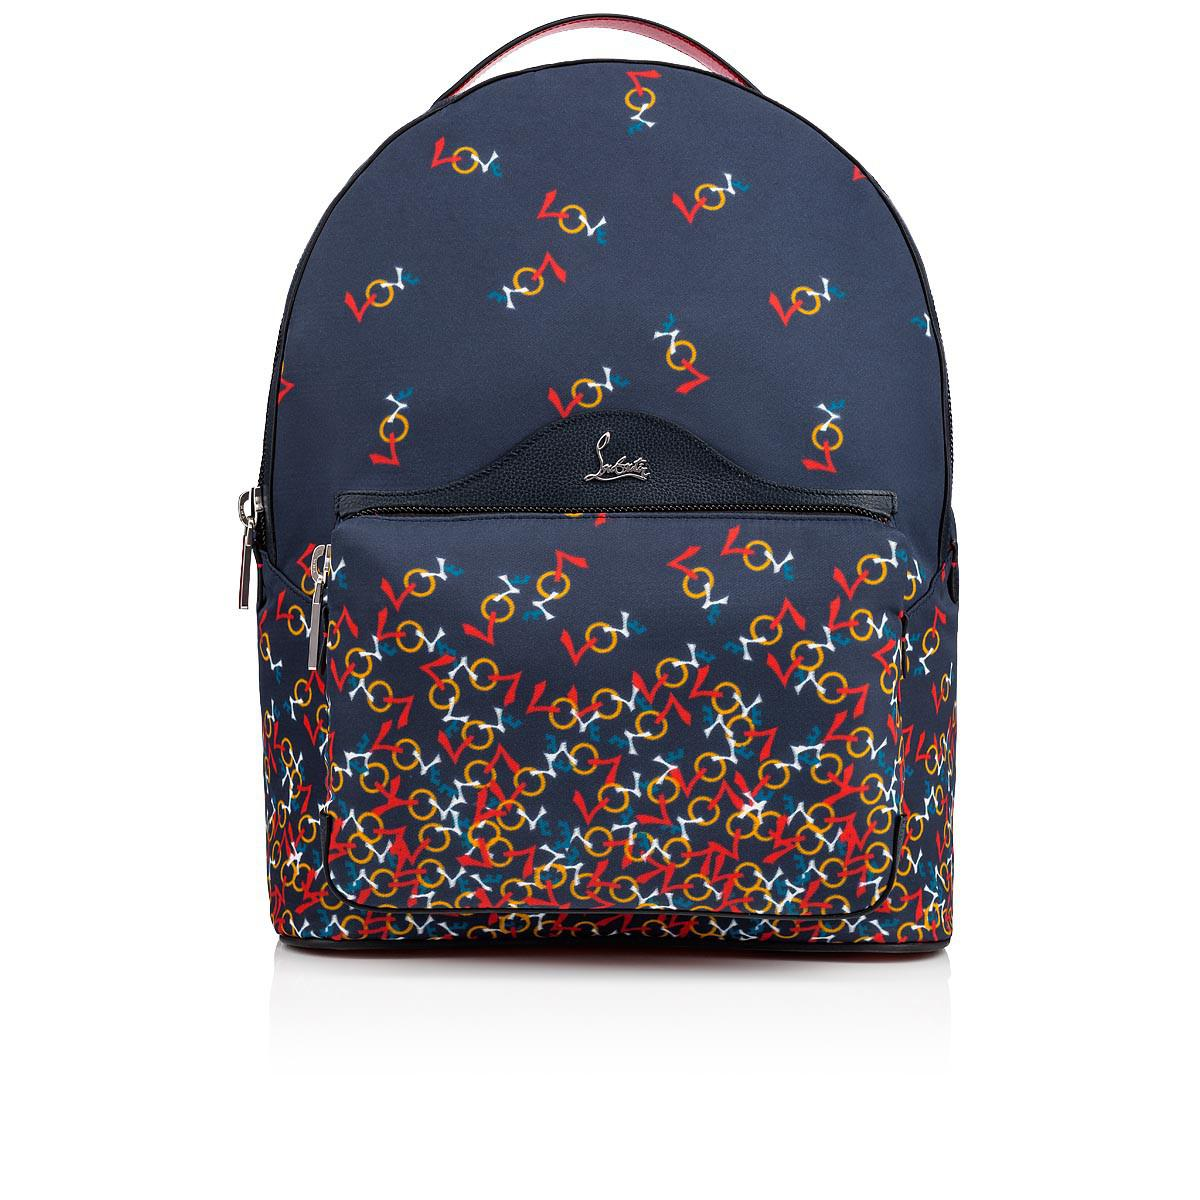 afaf46b7eec Christian Louboutin Backloubi Backpack Blue And Multicolor Nylon in ...